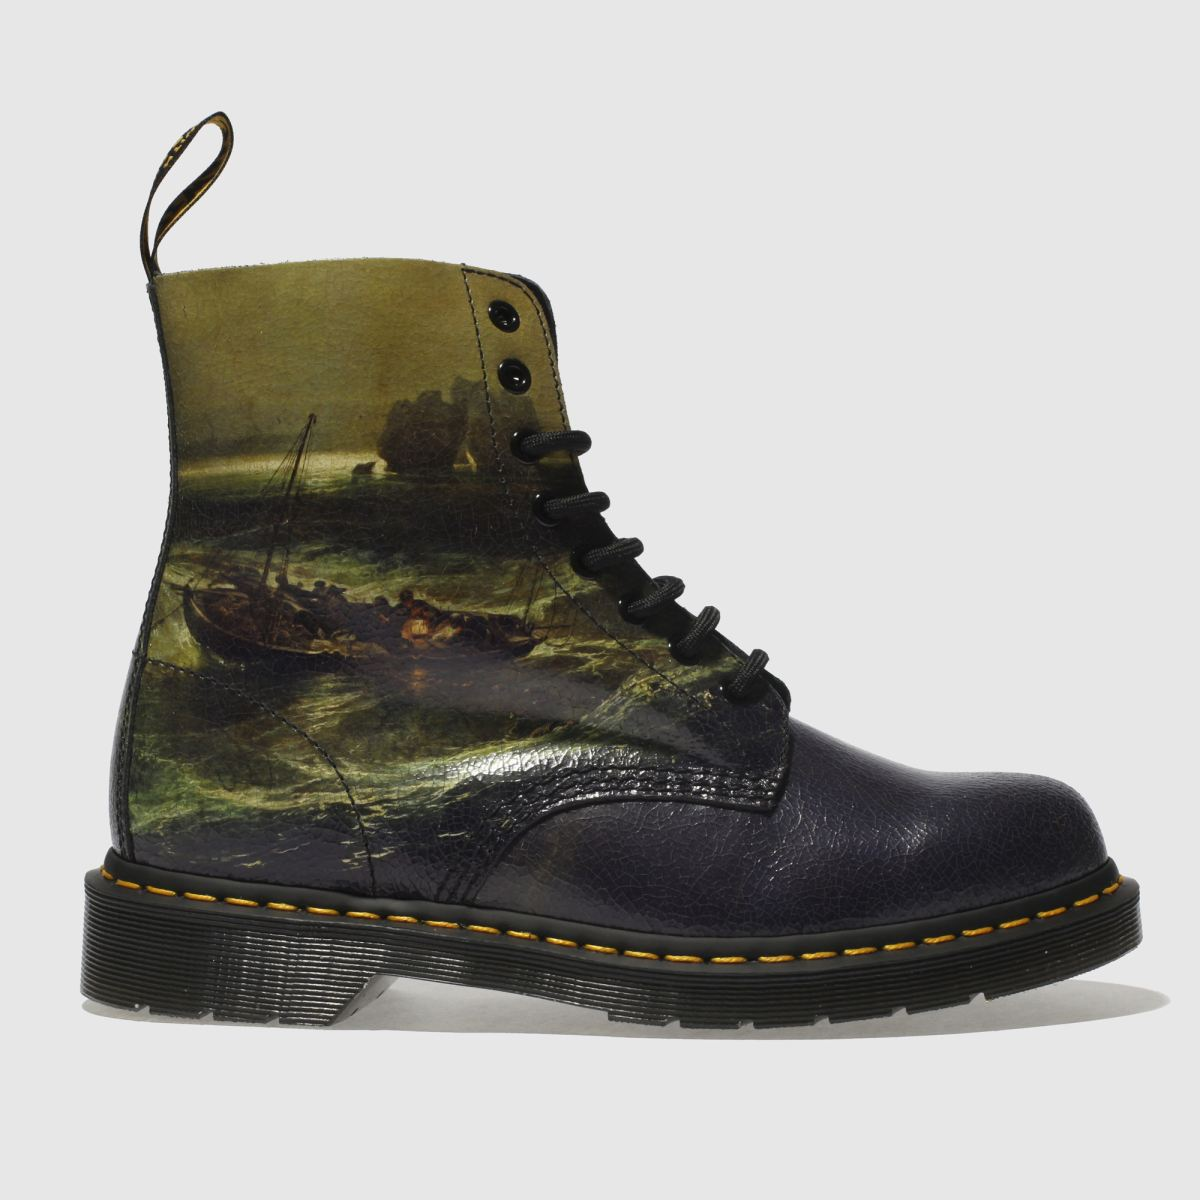 Dr Martens Black & Green Fisherman 1460 Pascal Boots